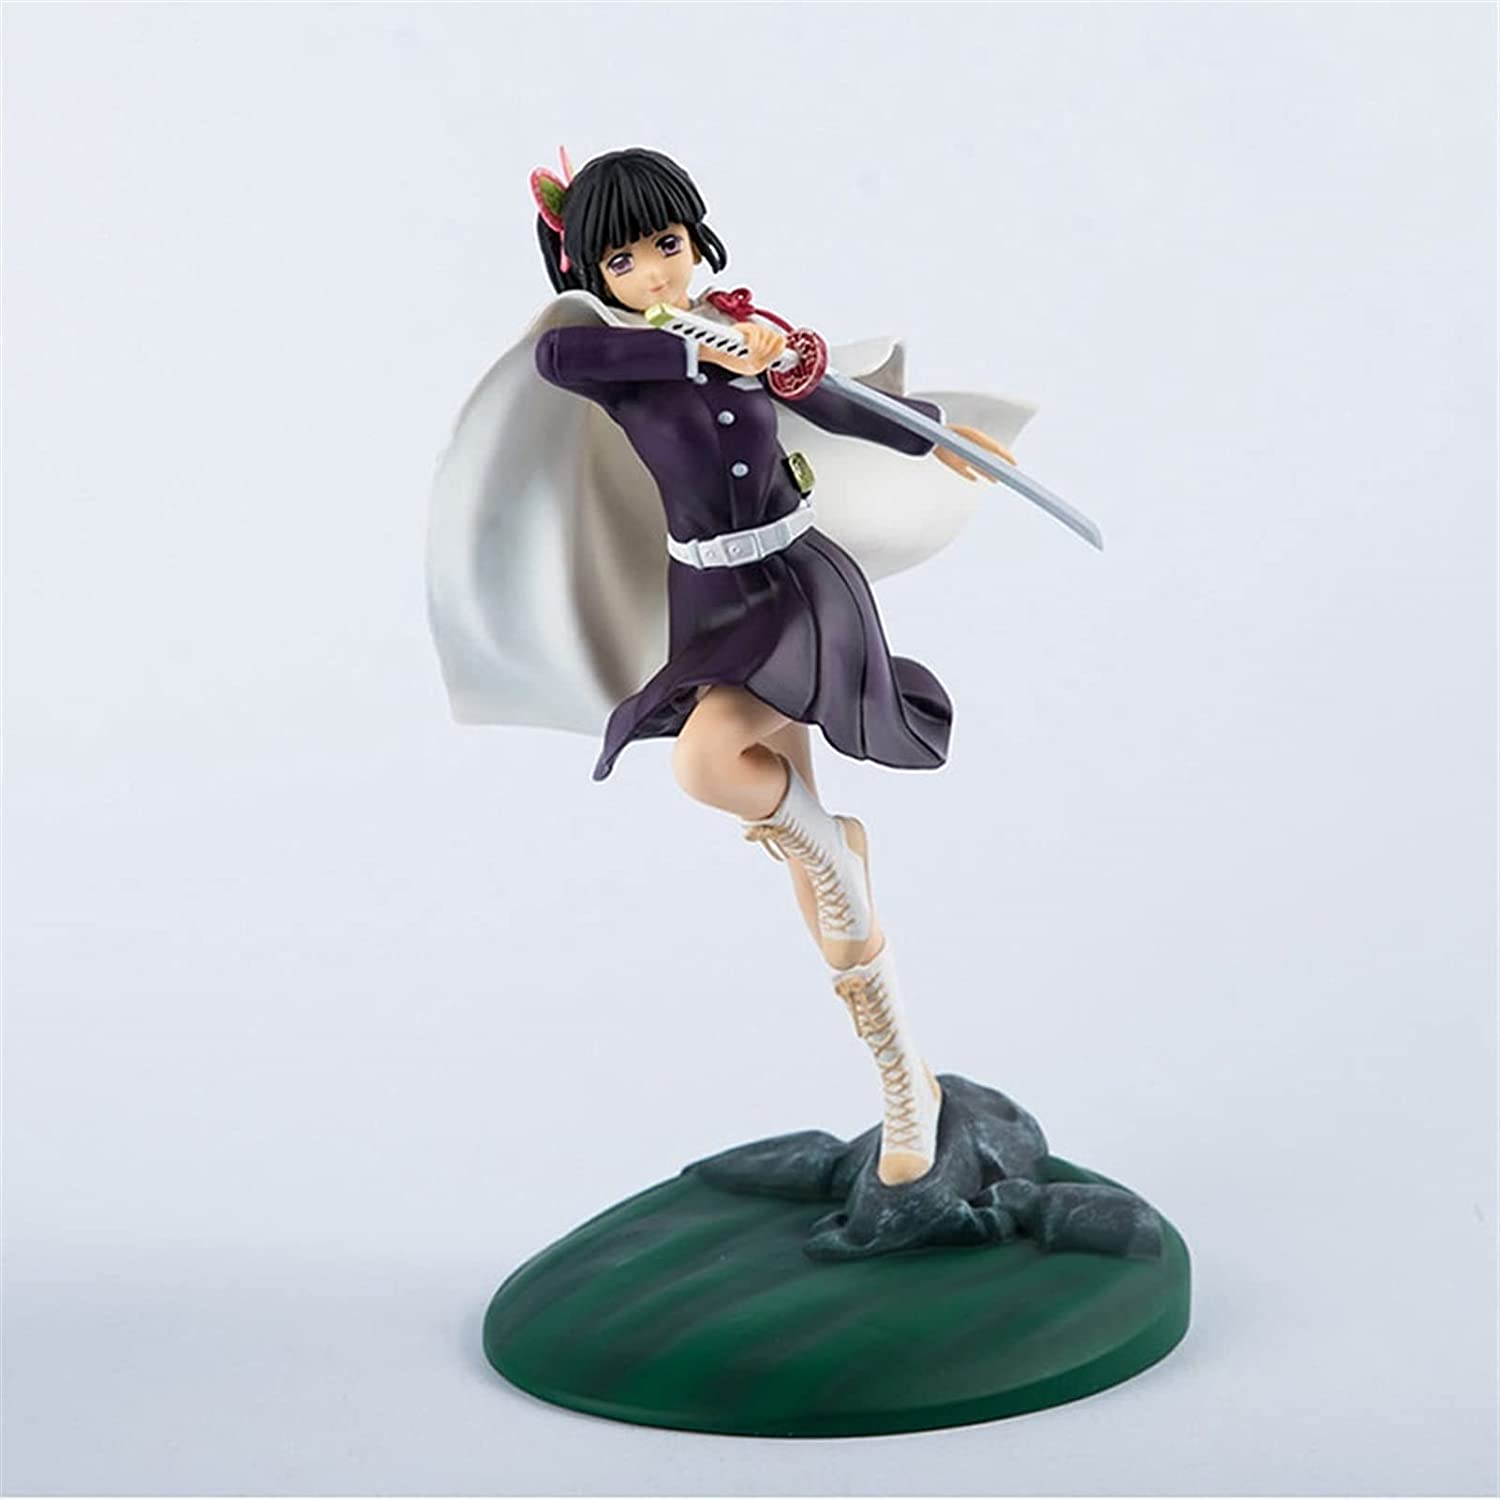 CUIGANGZ Demon Directly managed store Max 82% OFF Slayer Figure Fighting Scene Wieldin Pose Jumping